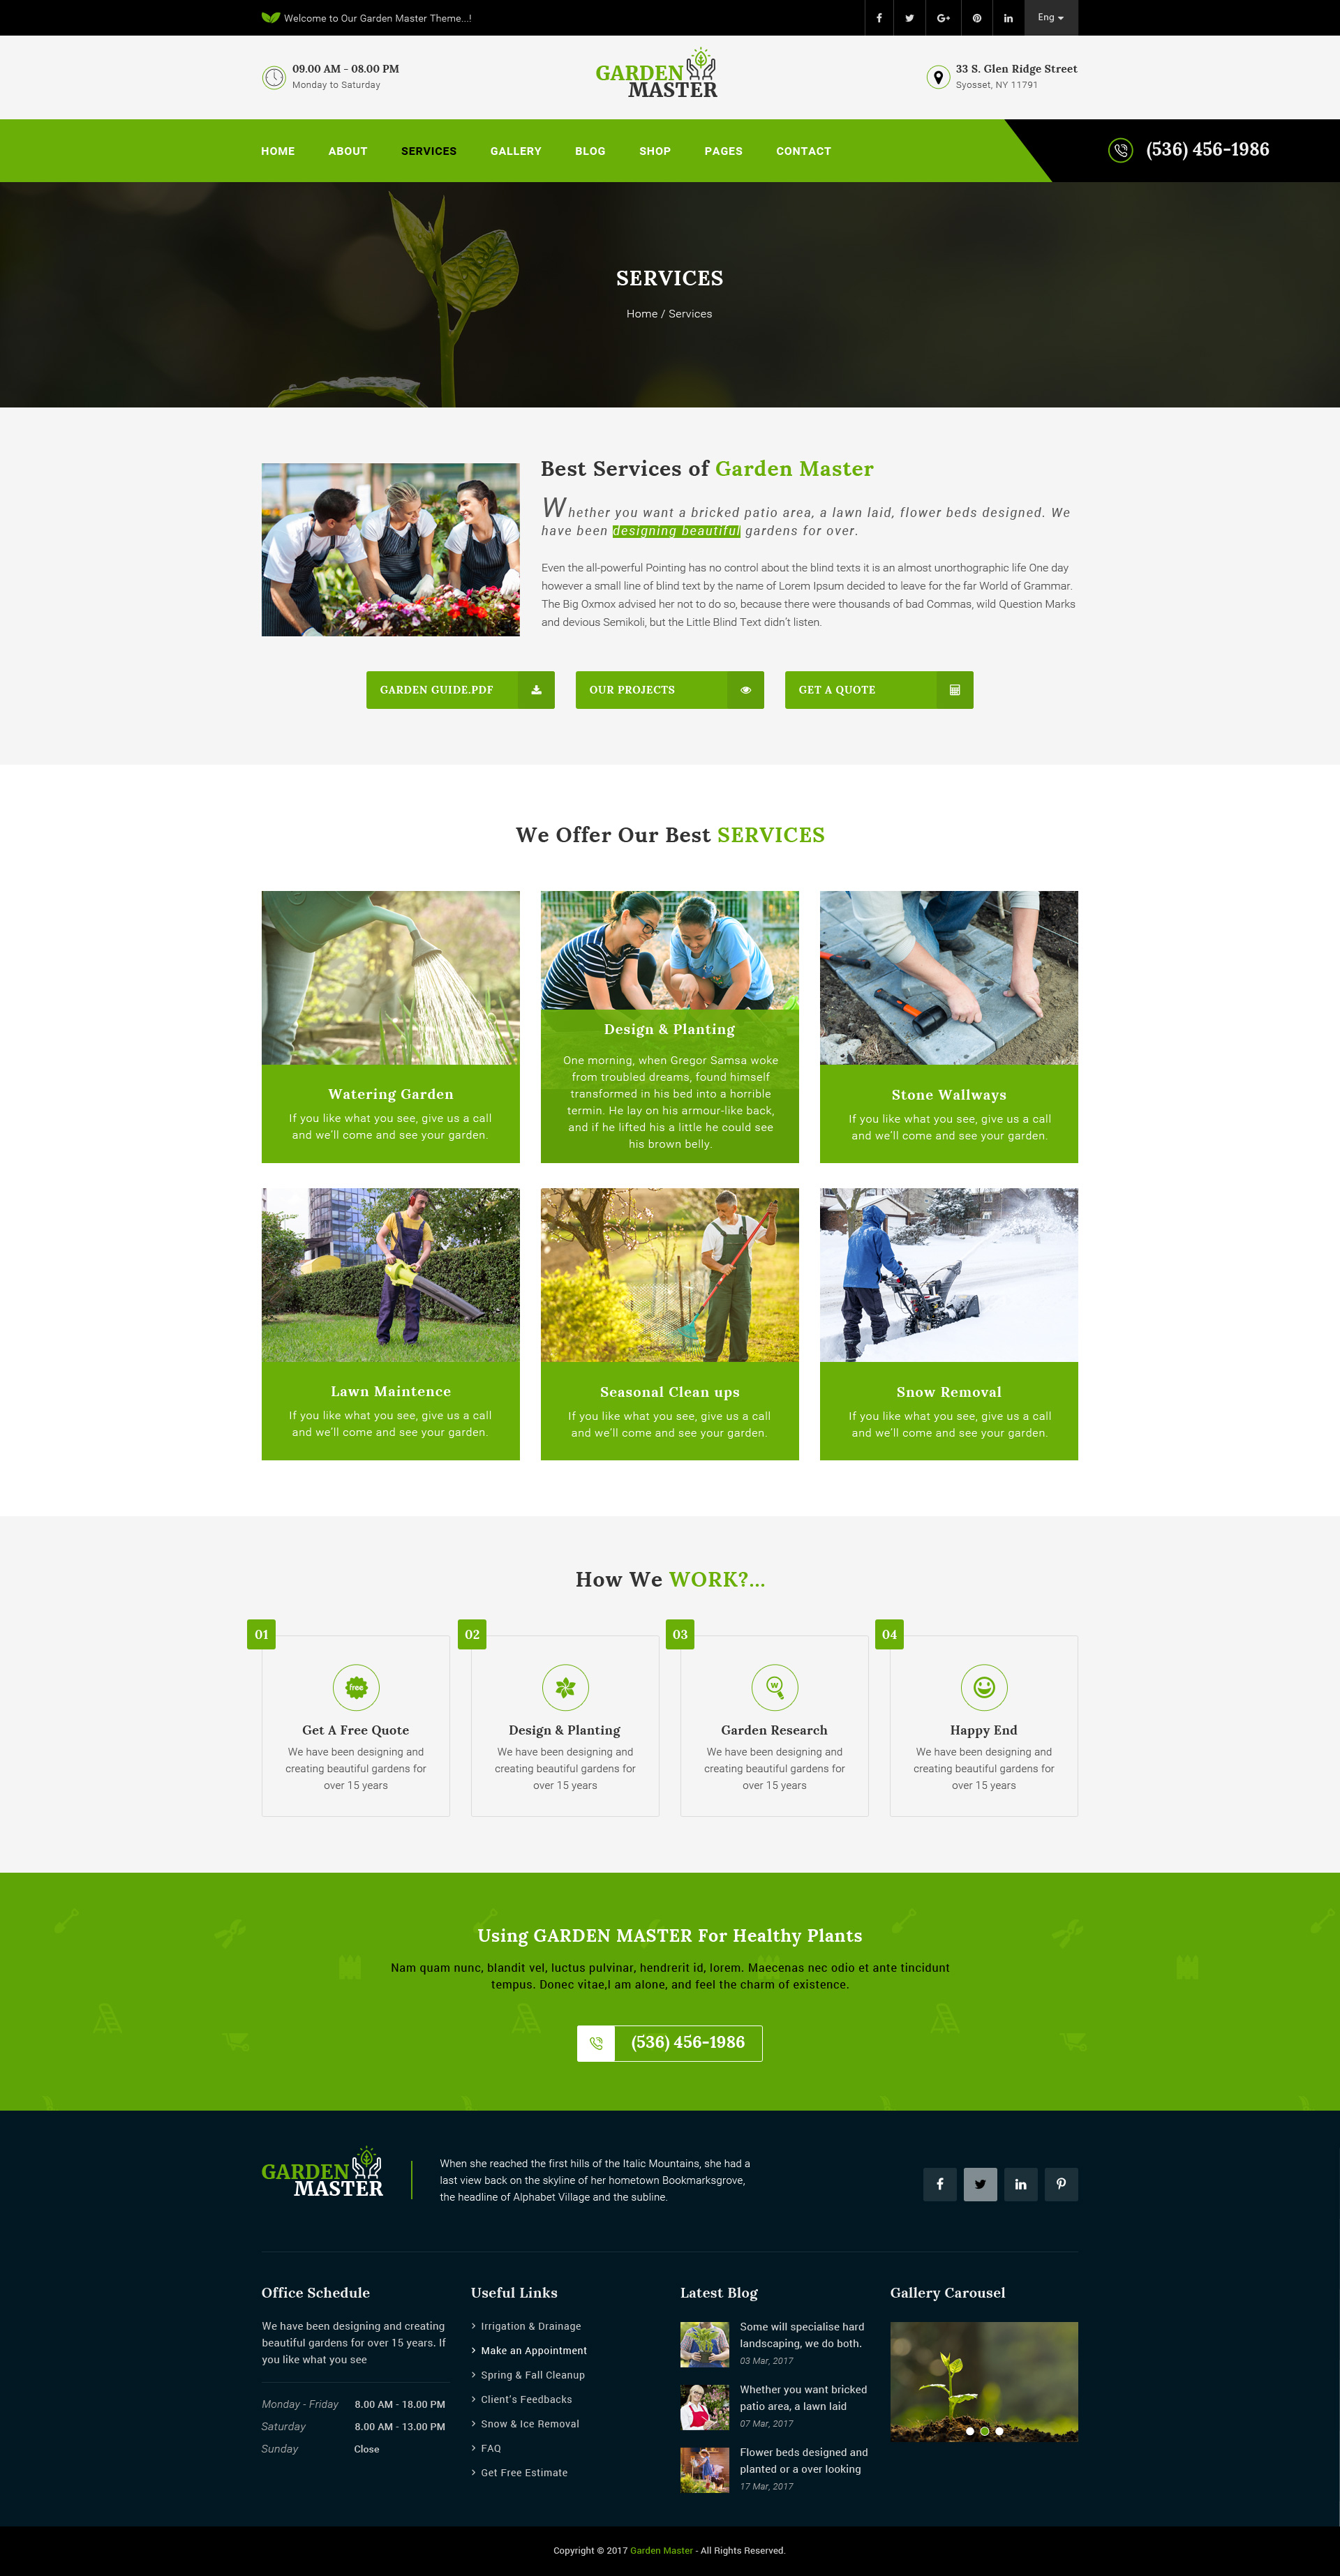 Garden Master Gardening and Landscaping PSD Template by DigitalHeaps